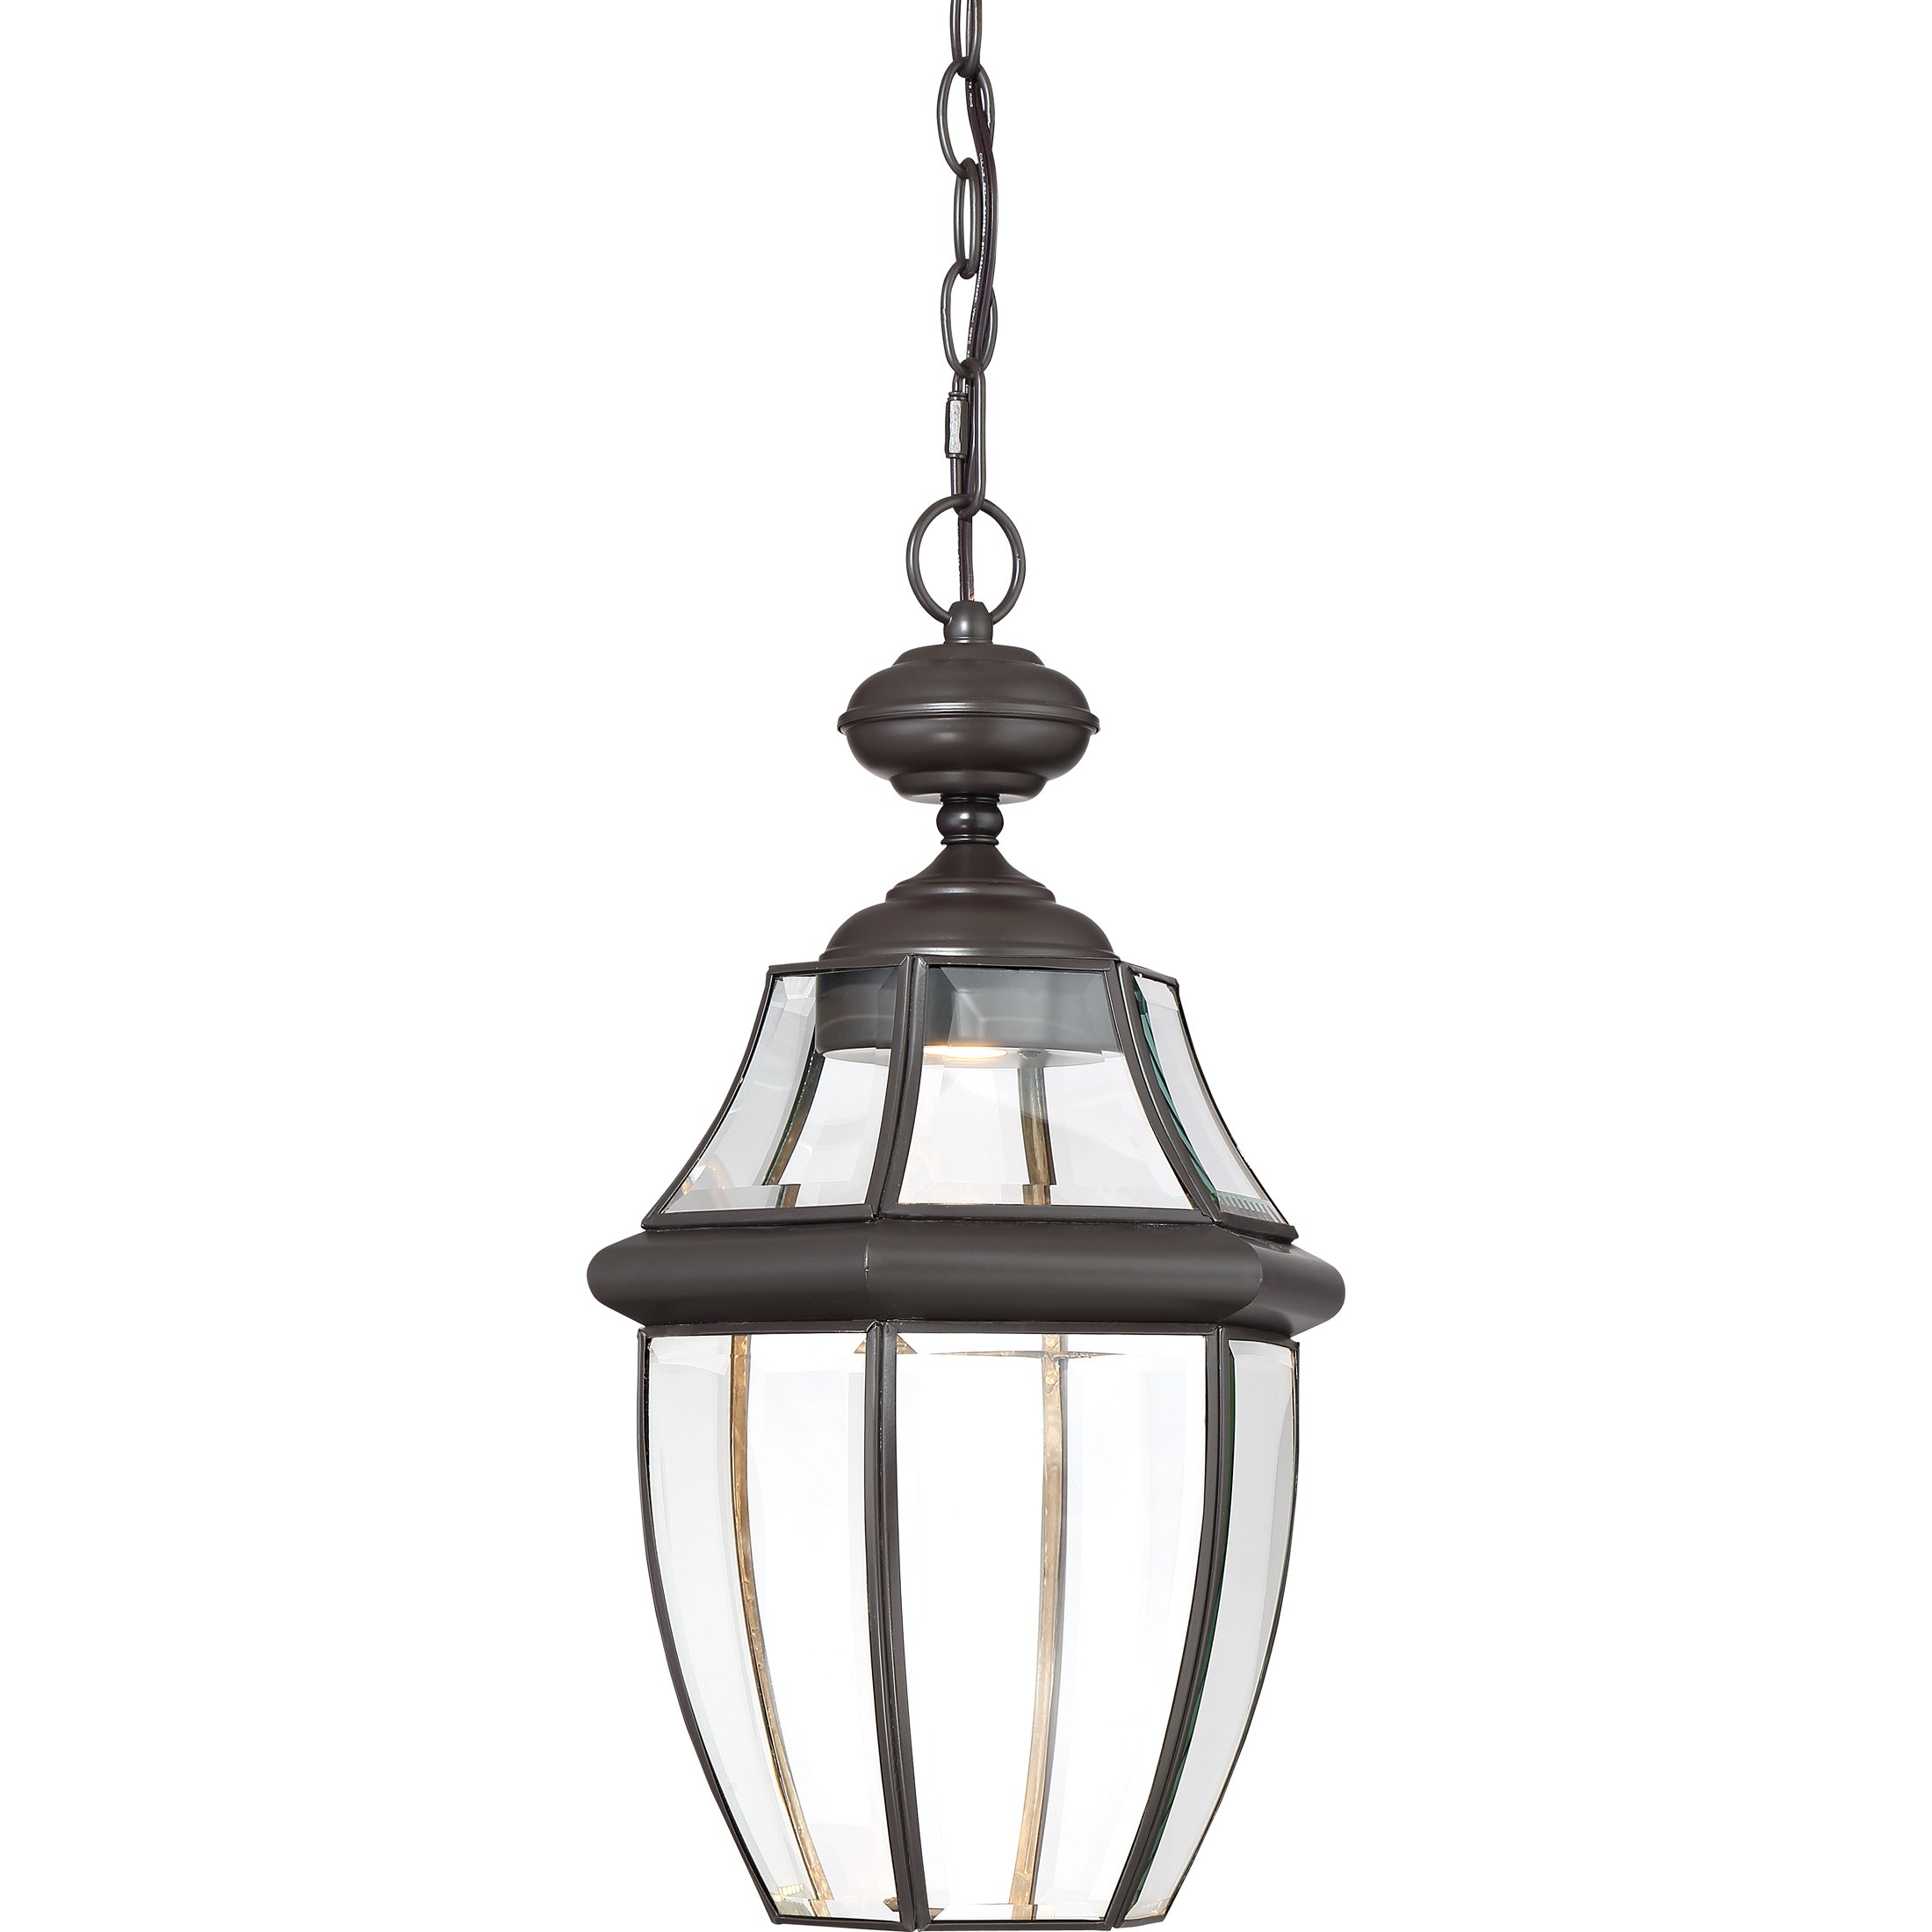 Quoizel LED Outdoor Hanging Lantern NYCL1911Z, Large, Medici Bronze